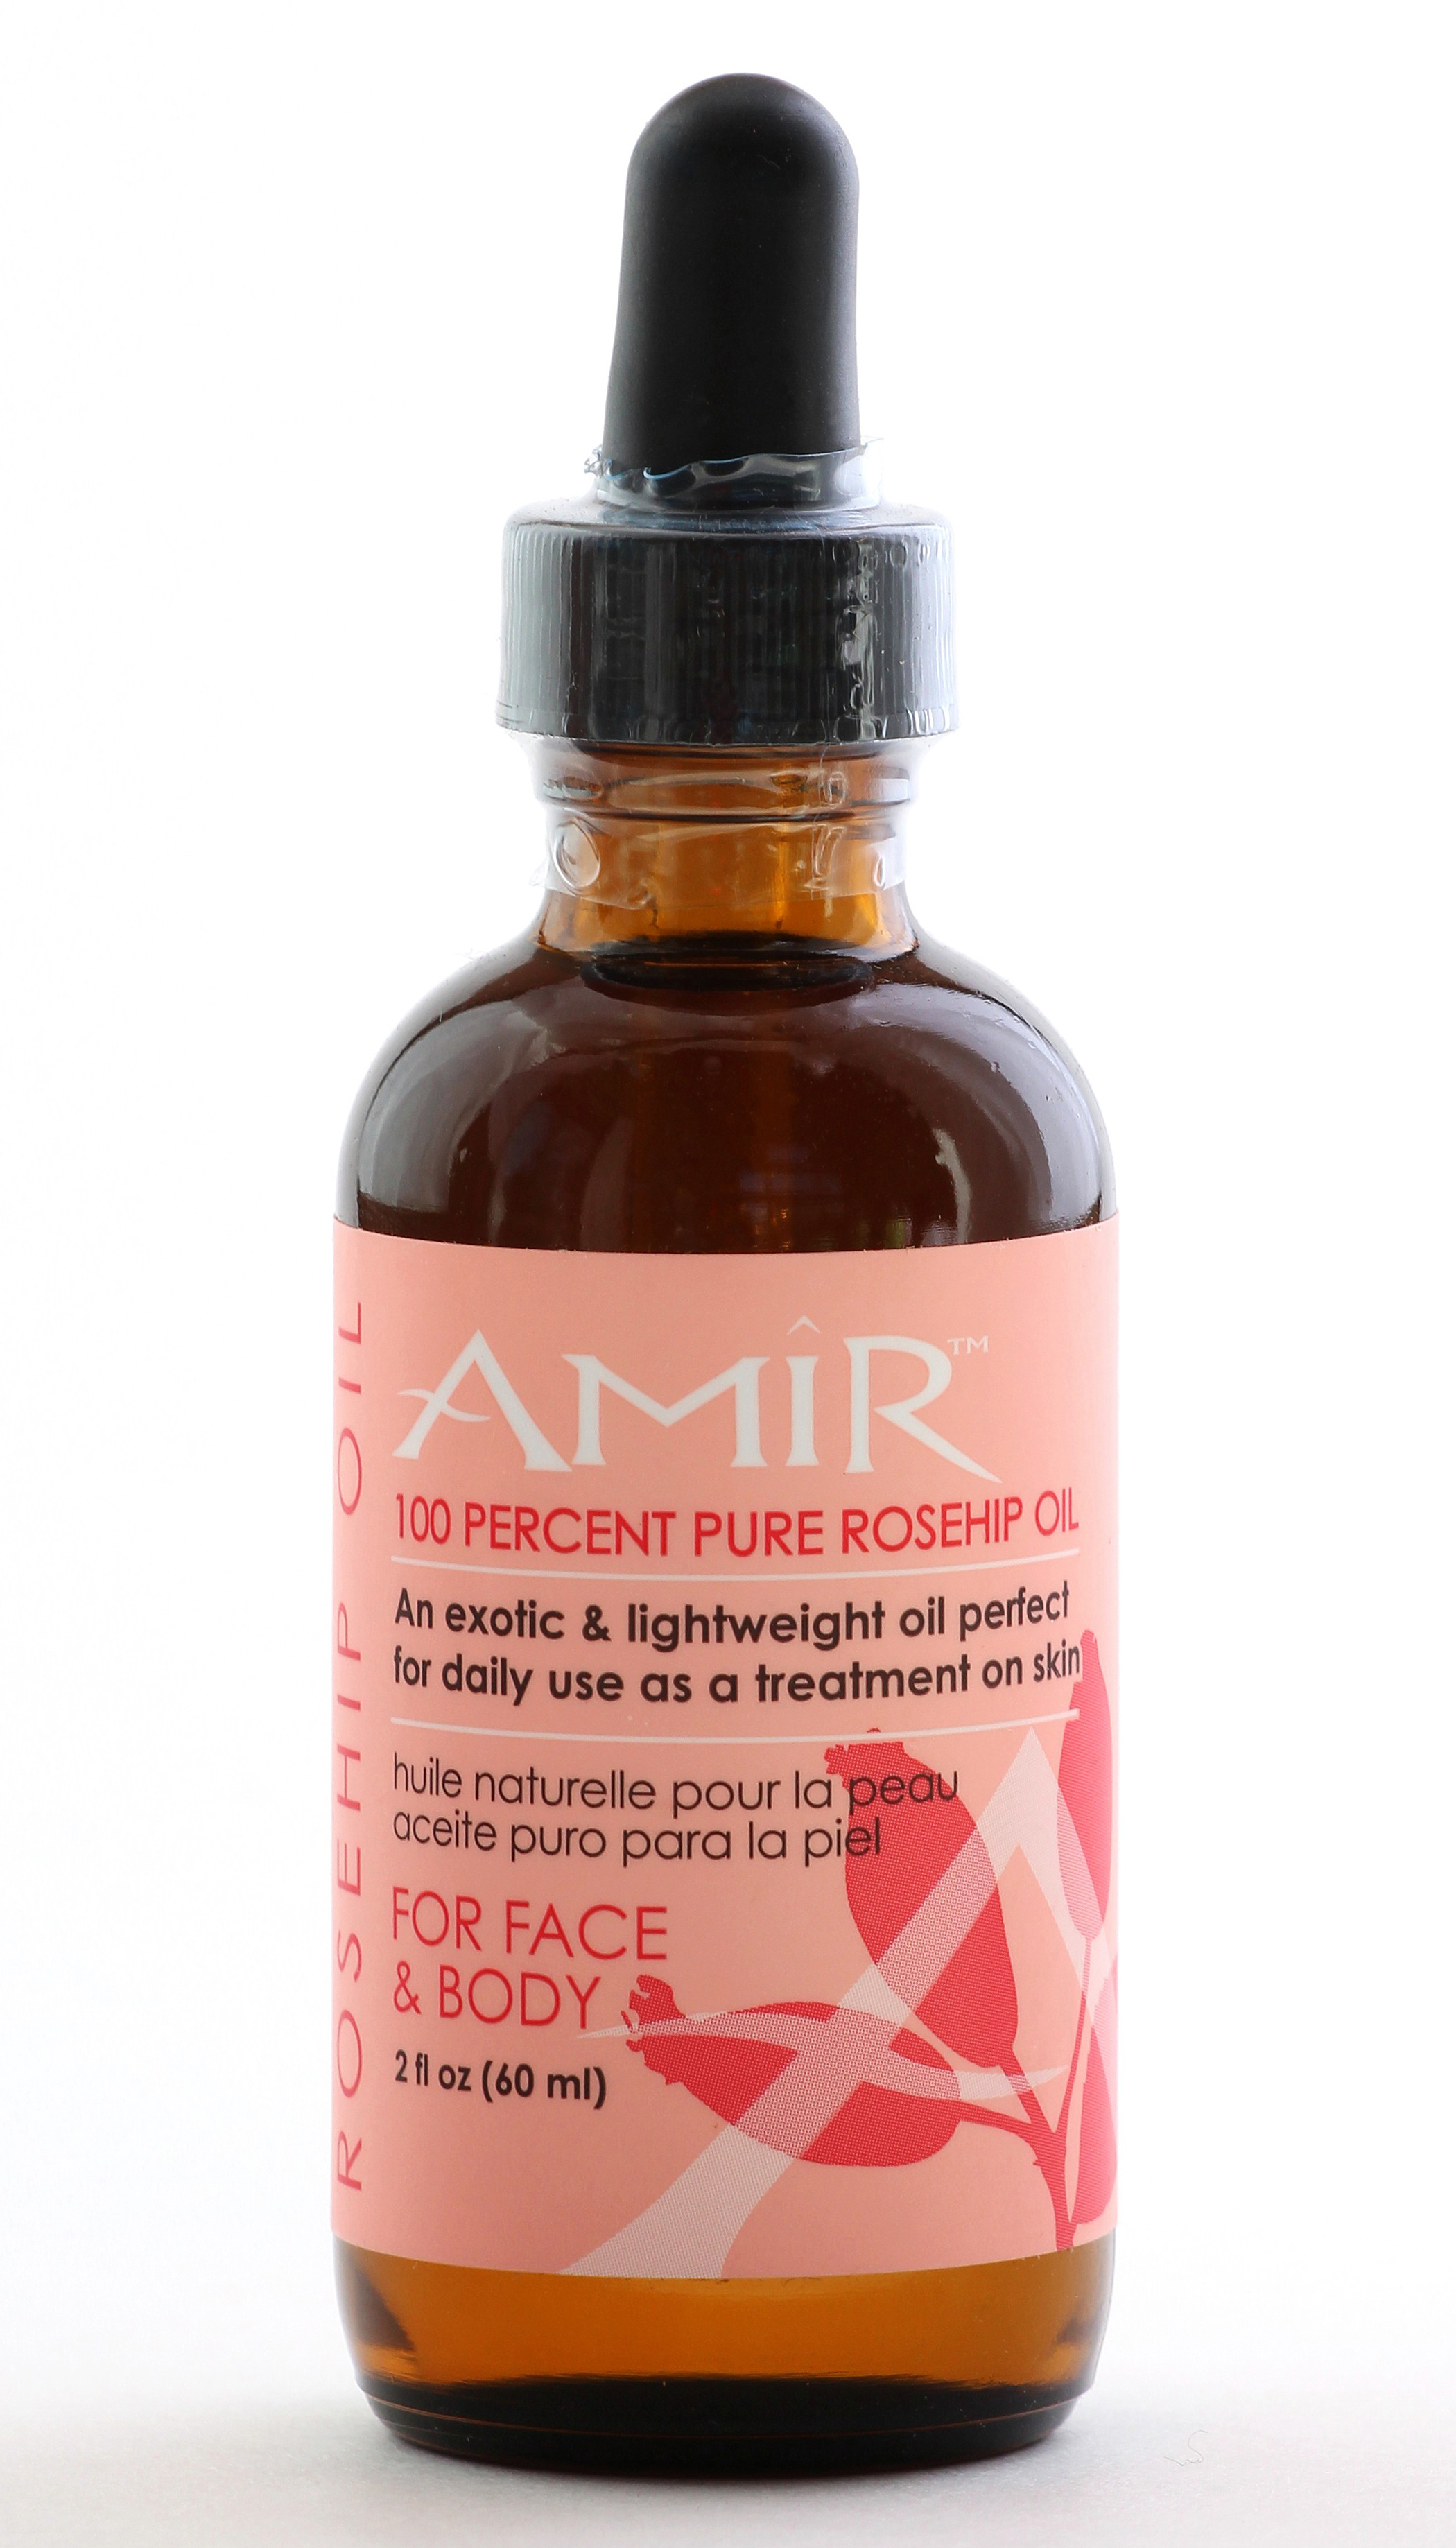 100% Pure Rosehip Oil for Skin